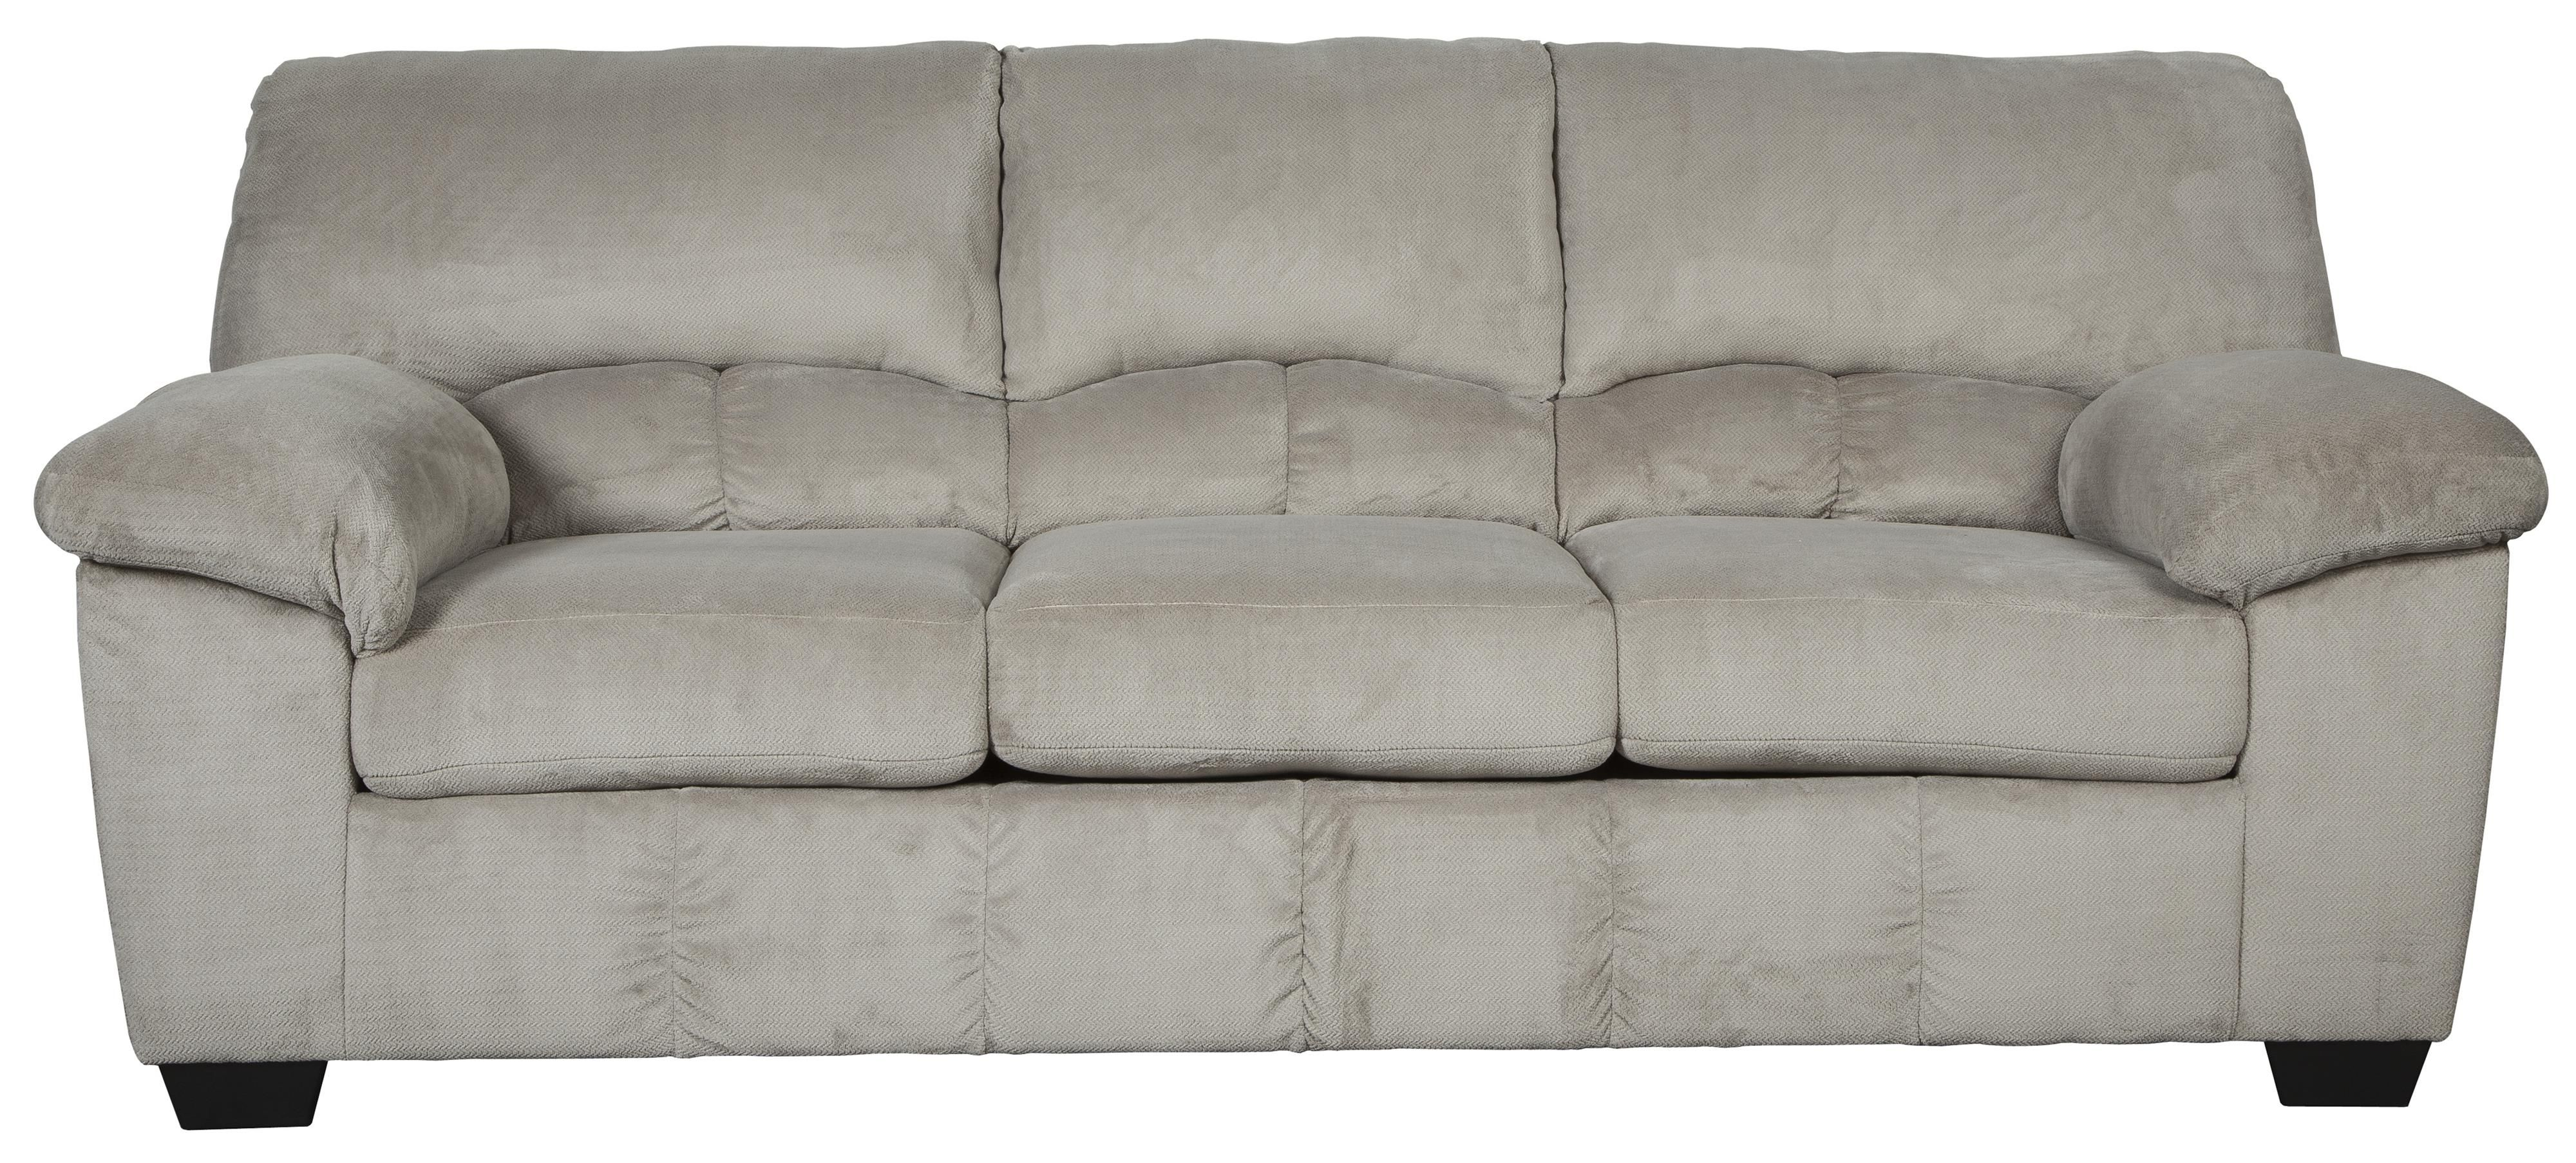 Dailey Sofa By Signature Design By Ashley Living Room